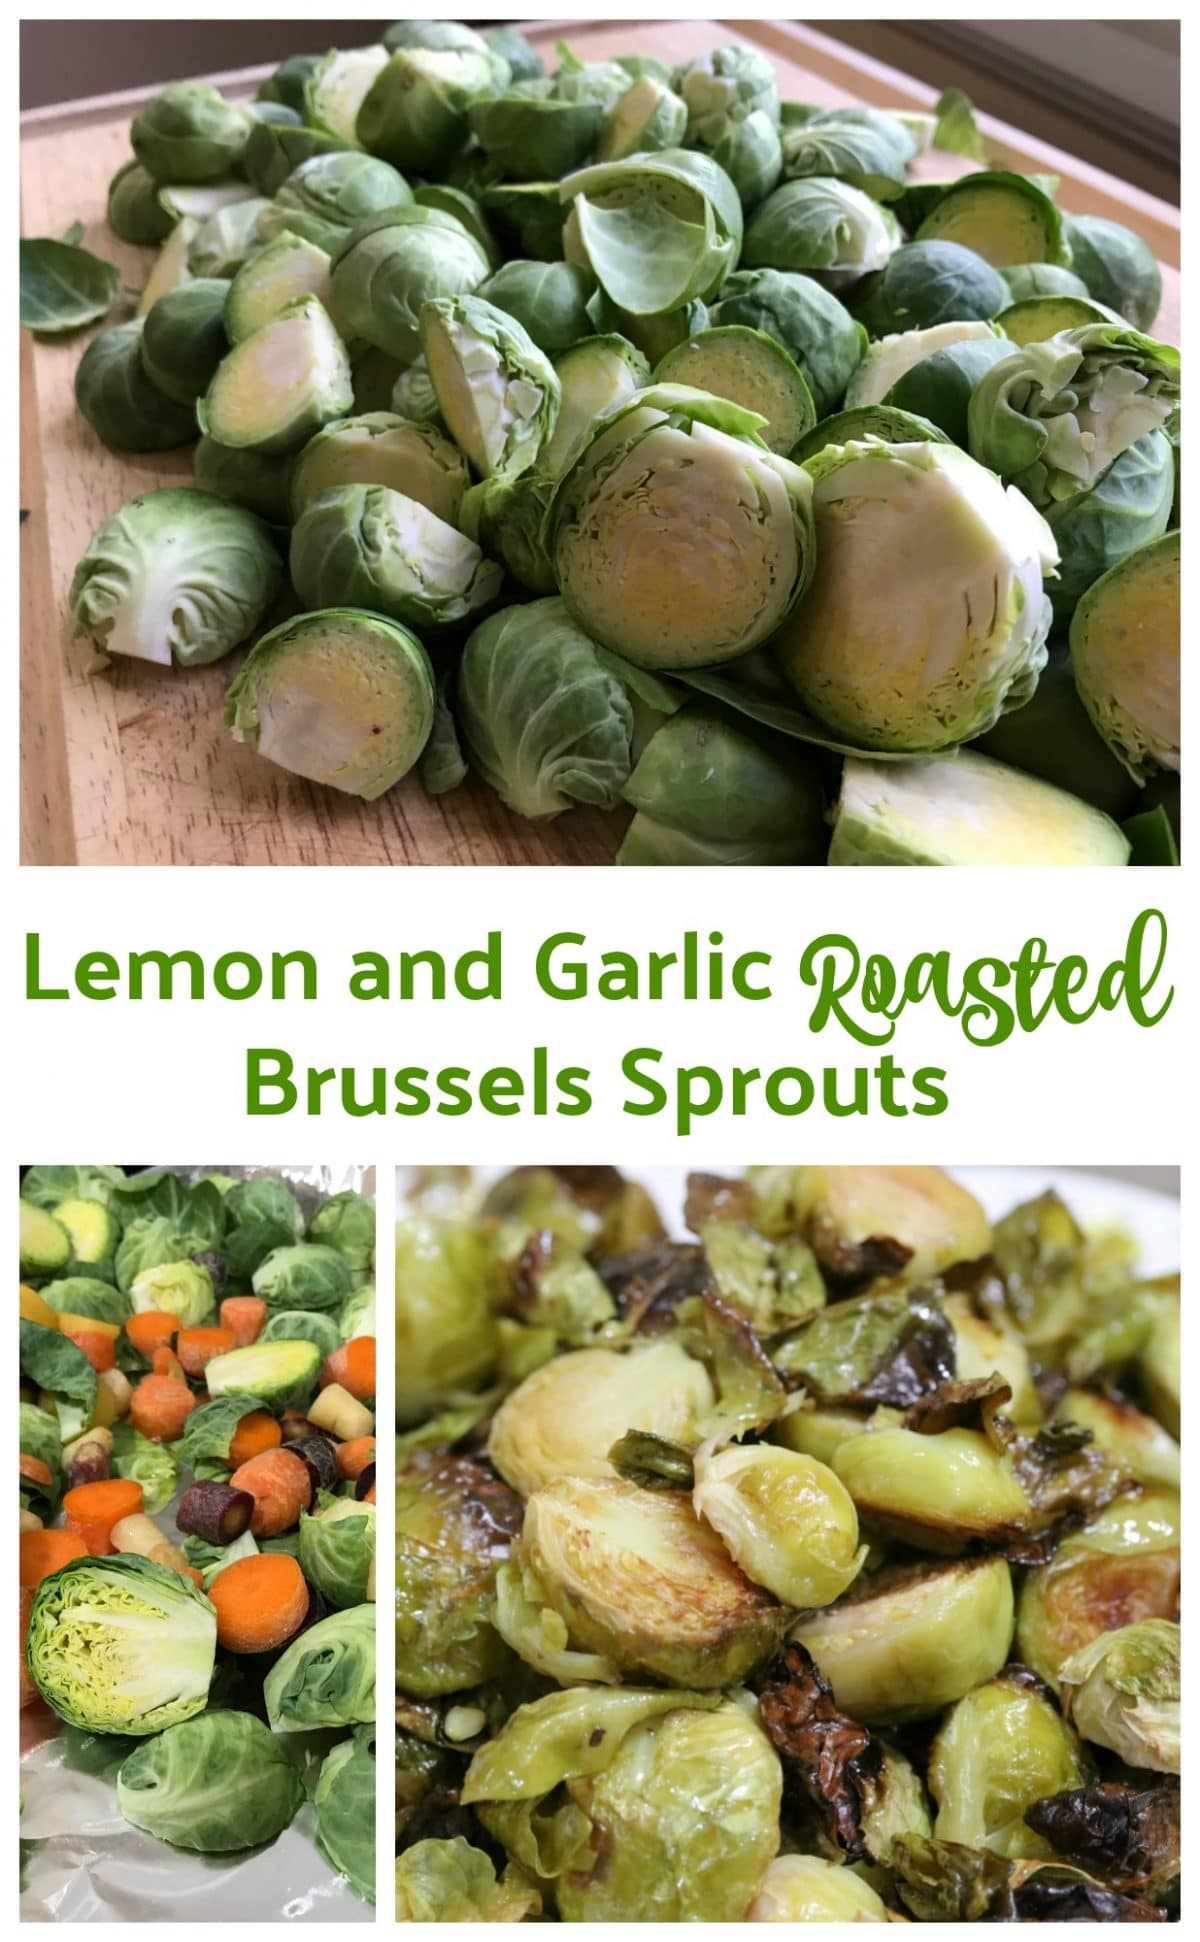 Lemon and Garlic Roasted Brussels Sprouts || Erin Brighton | eat your veggies | video | easy side dishes | gluten free | Got To Be NC